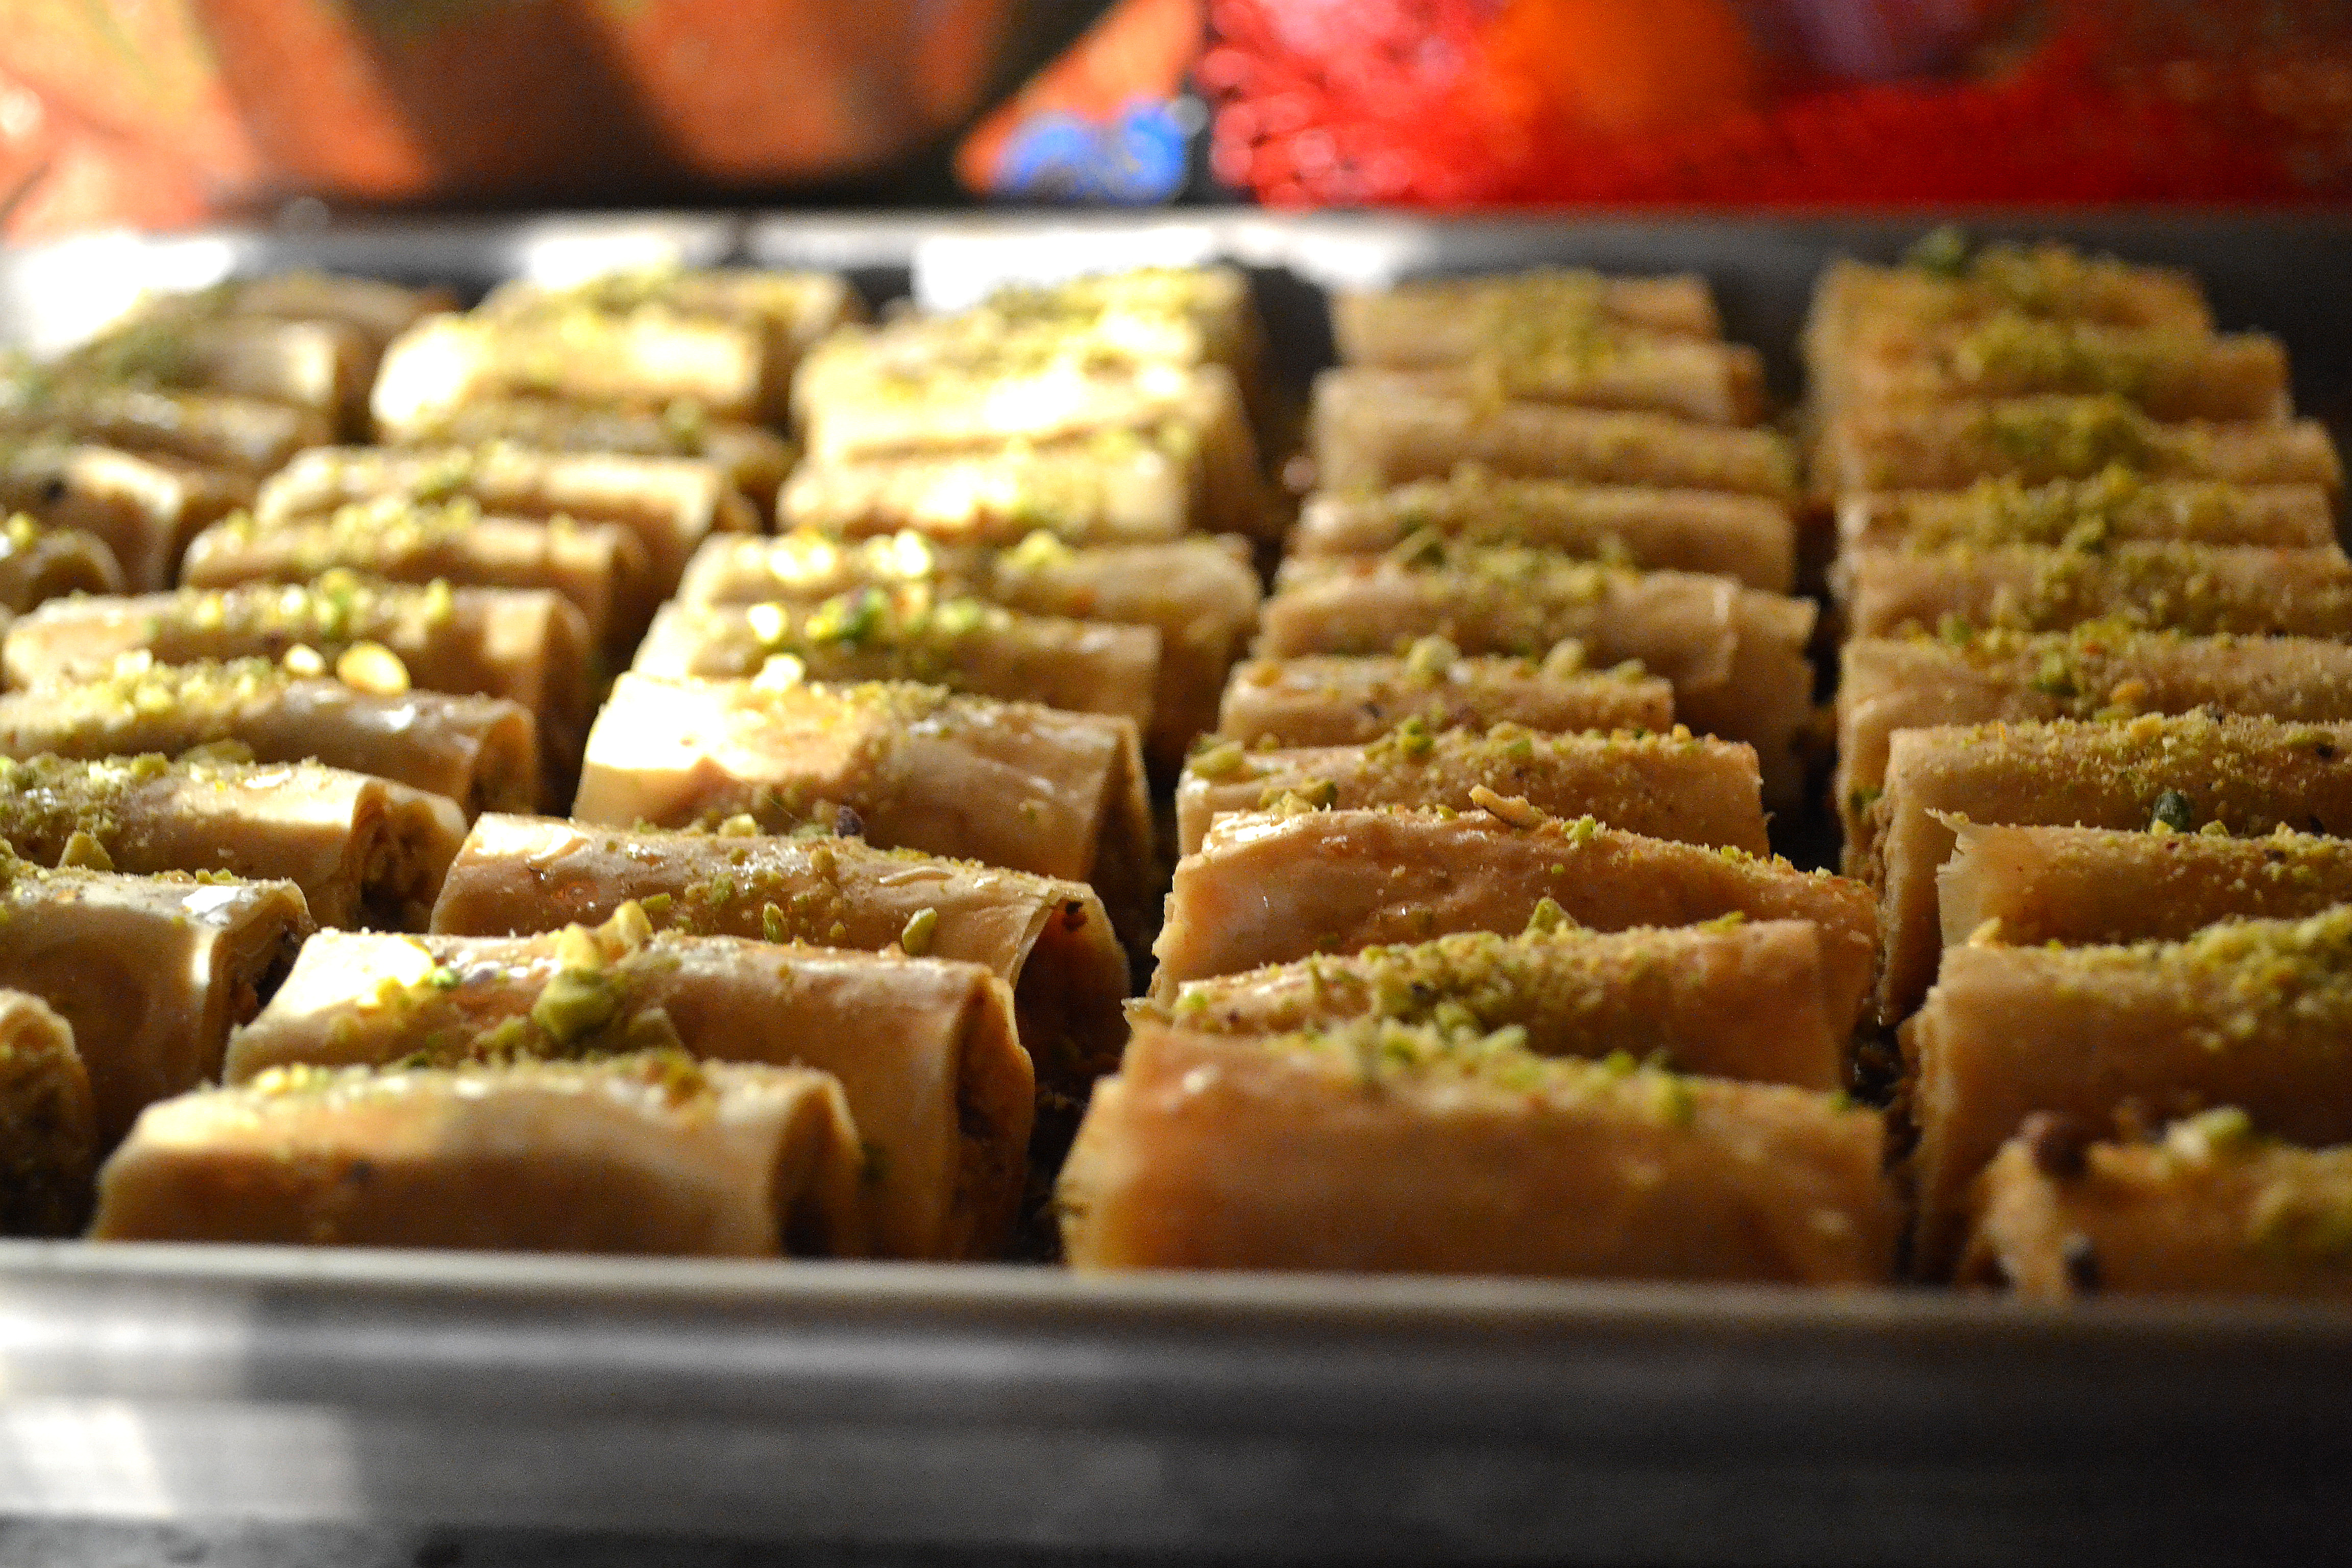 Home» Rose Water & Orange Blossoms Blog – Fresh and Classic Lebanese Recipes» Stories and Recipes» Pastry and Sweets» Lebanese Almond Baklawa Fingers Recipe. These Lebanese almond baklawa fingers are delicate, crisp, and fun to make. They're .